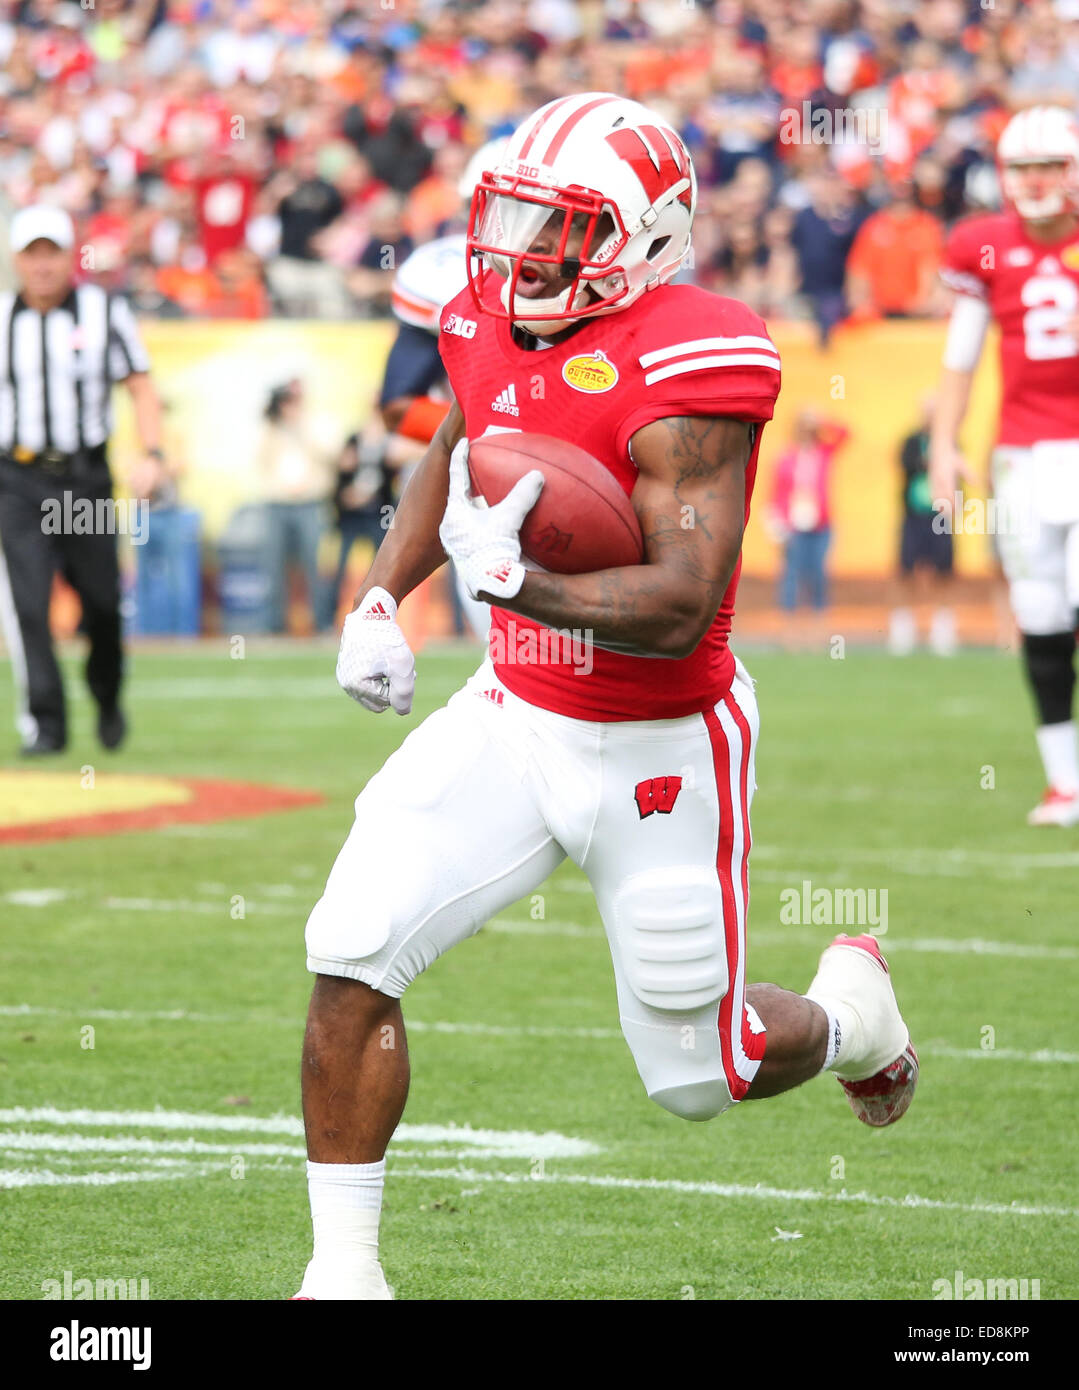 Tampa, FL, USA. 1st Jan, 2015. Wisconsin RB Corey Clement #6 breaks off a big run during the Outback Bowl game between - Stock Image